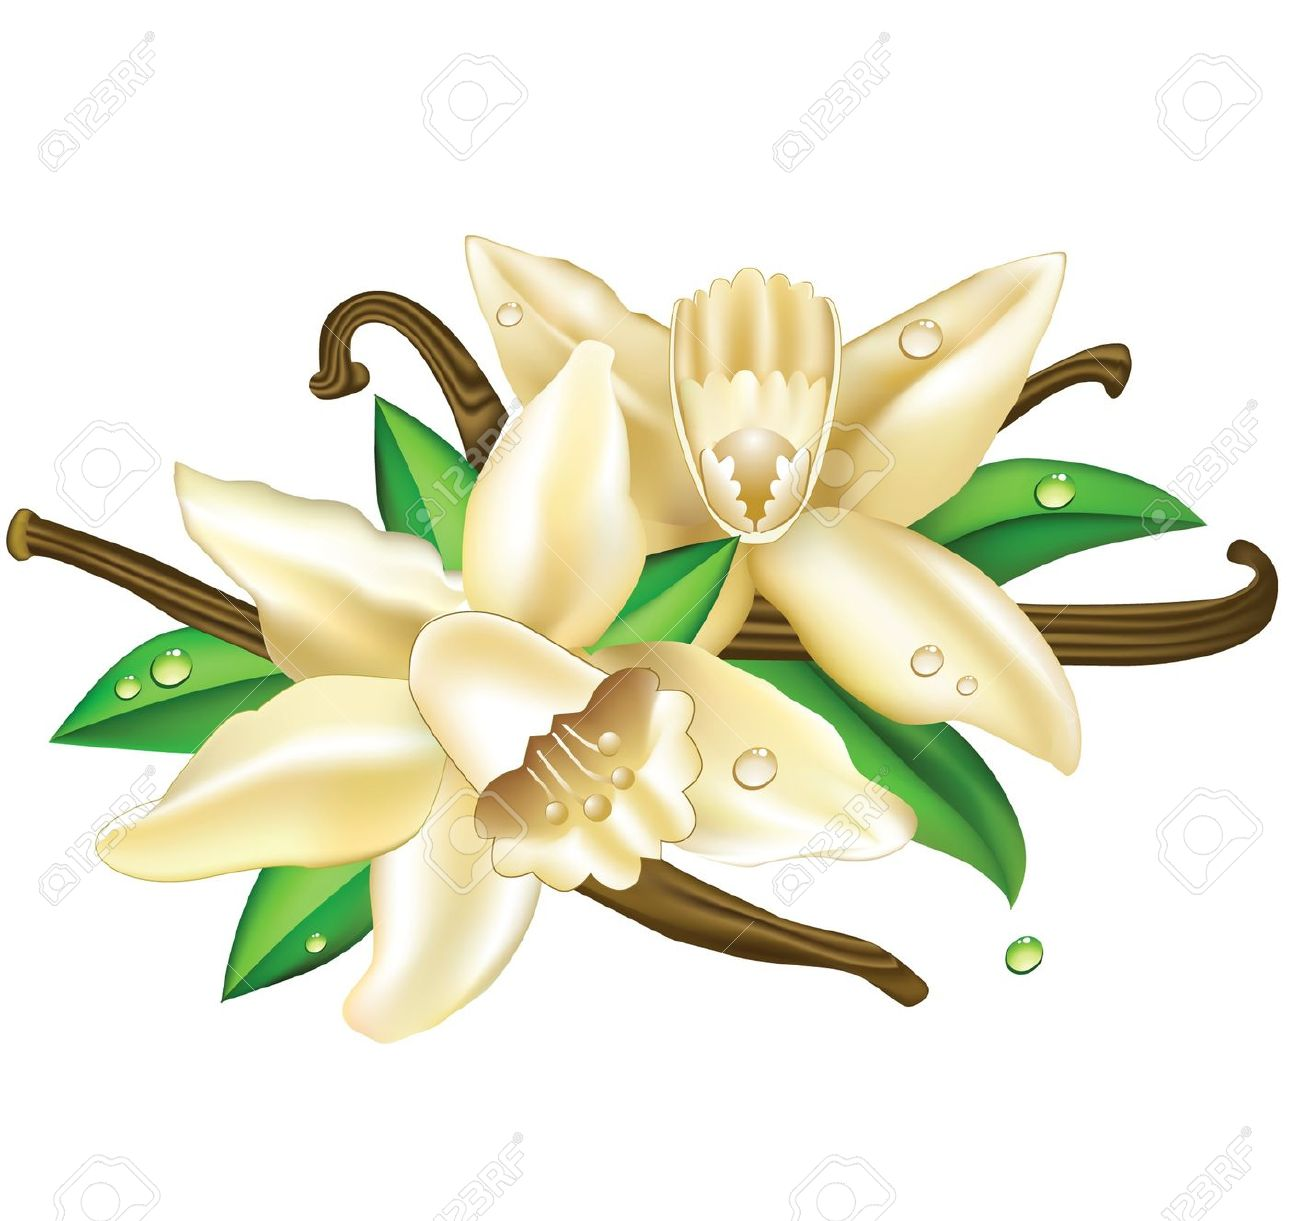 Vector Illustration Vanilla Flowers Royalty Free Cliparts, Vectors.